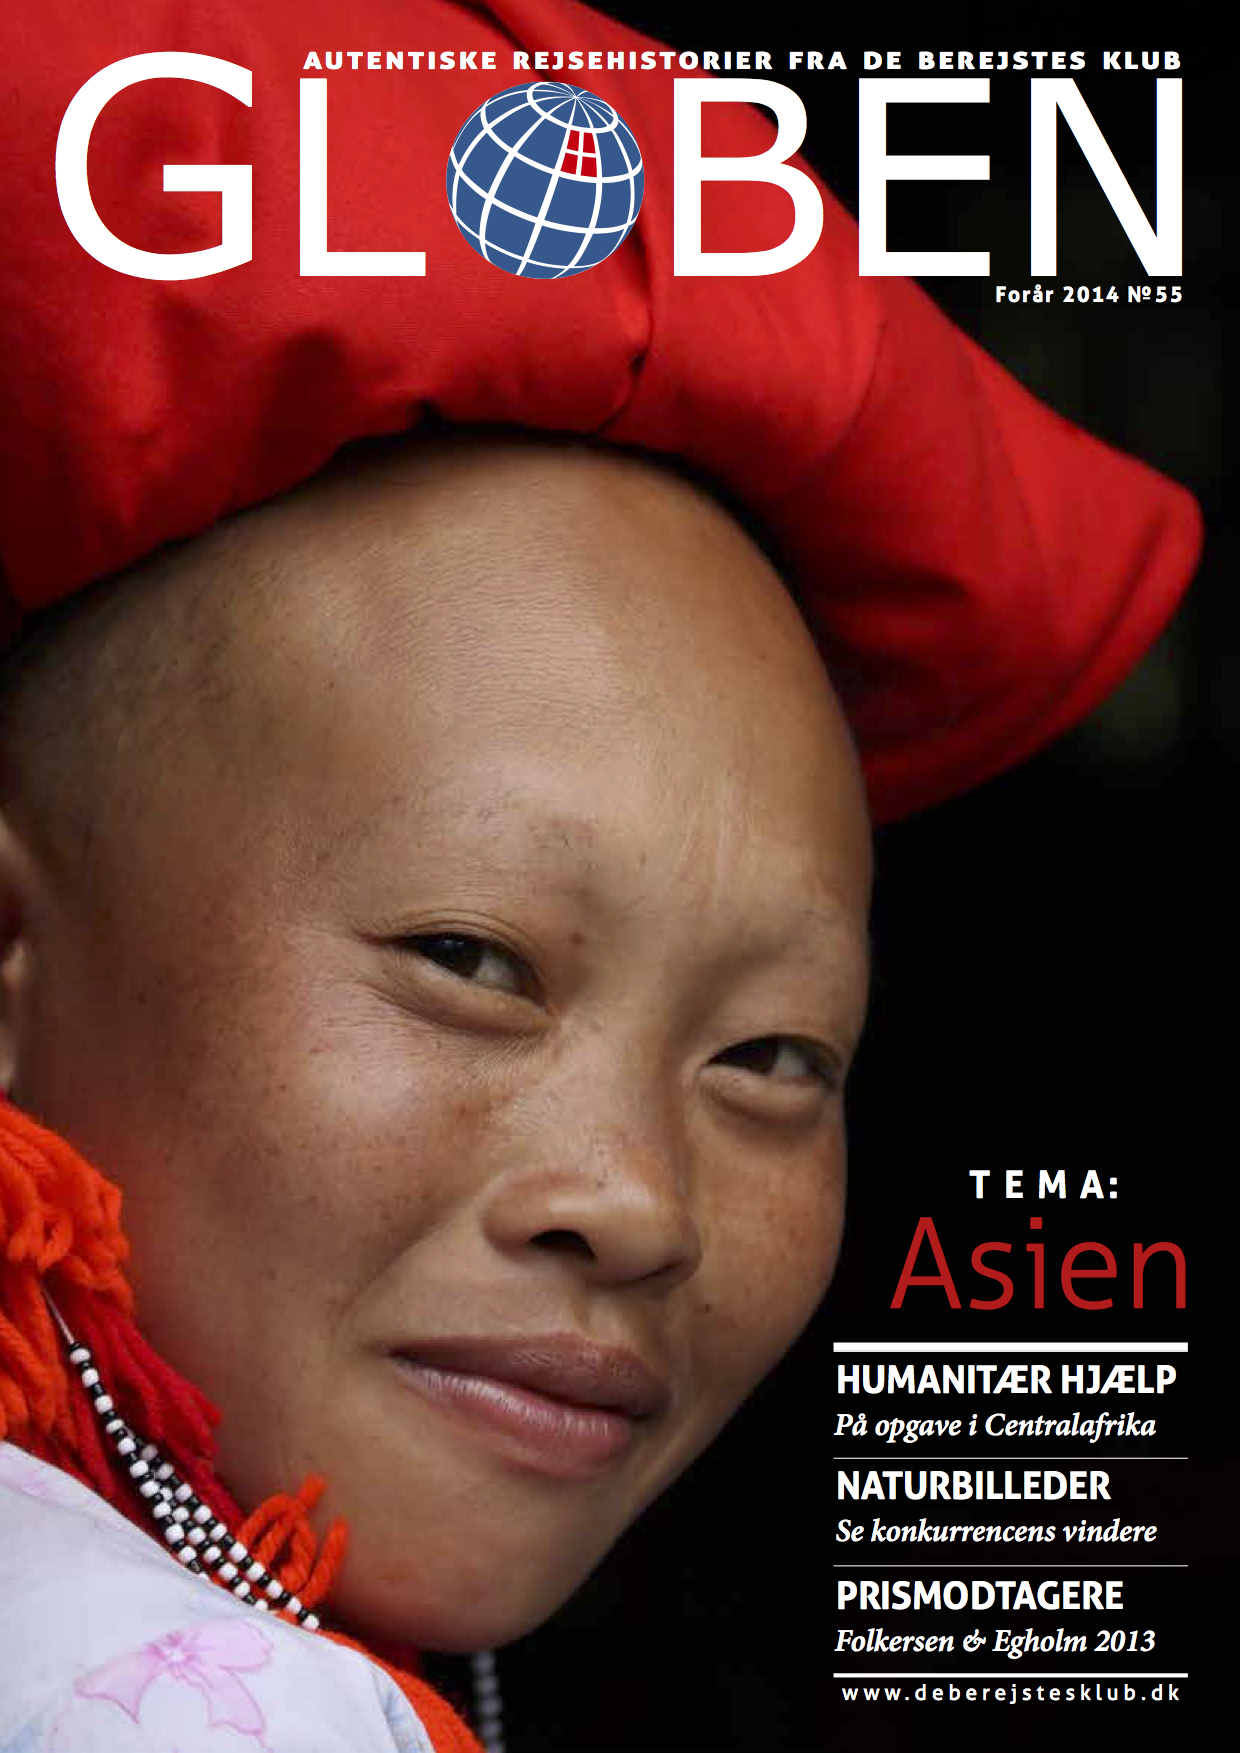 Issue 55: Asien   Uzbekistan, Kyrgyzstan, Indonesia, Thailand, Japan, Vietnam, Taiwan, Nepal, Armenia are featured here in this Asia issue. These exotic stories are the next best thing to actually being there. Download issue 55  here .